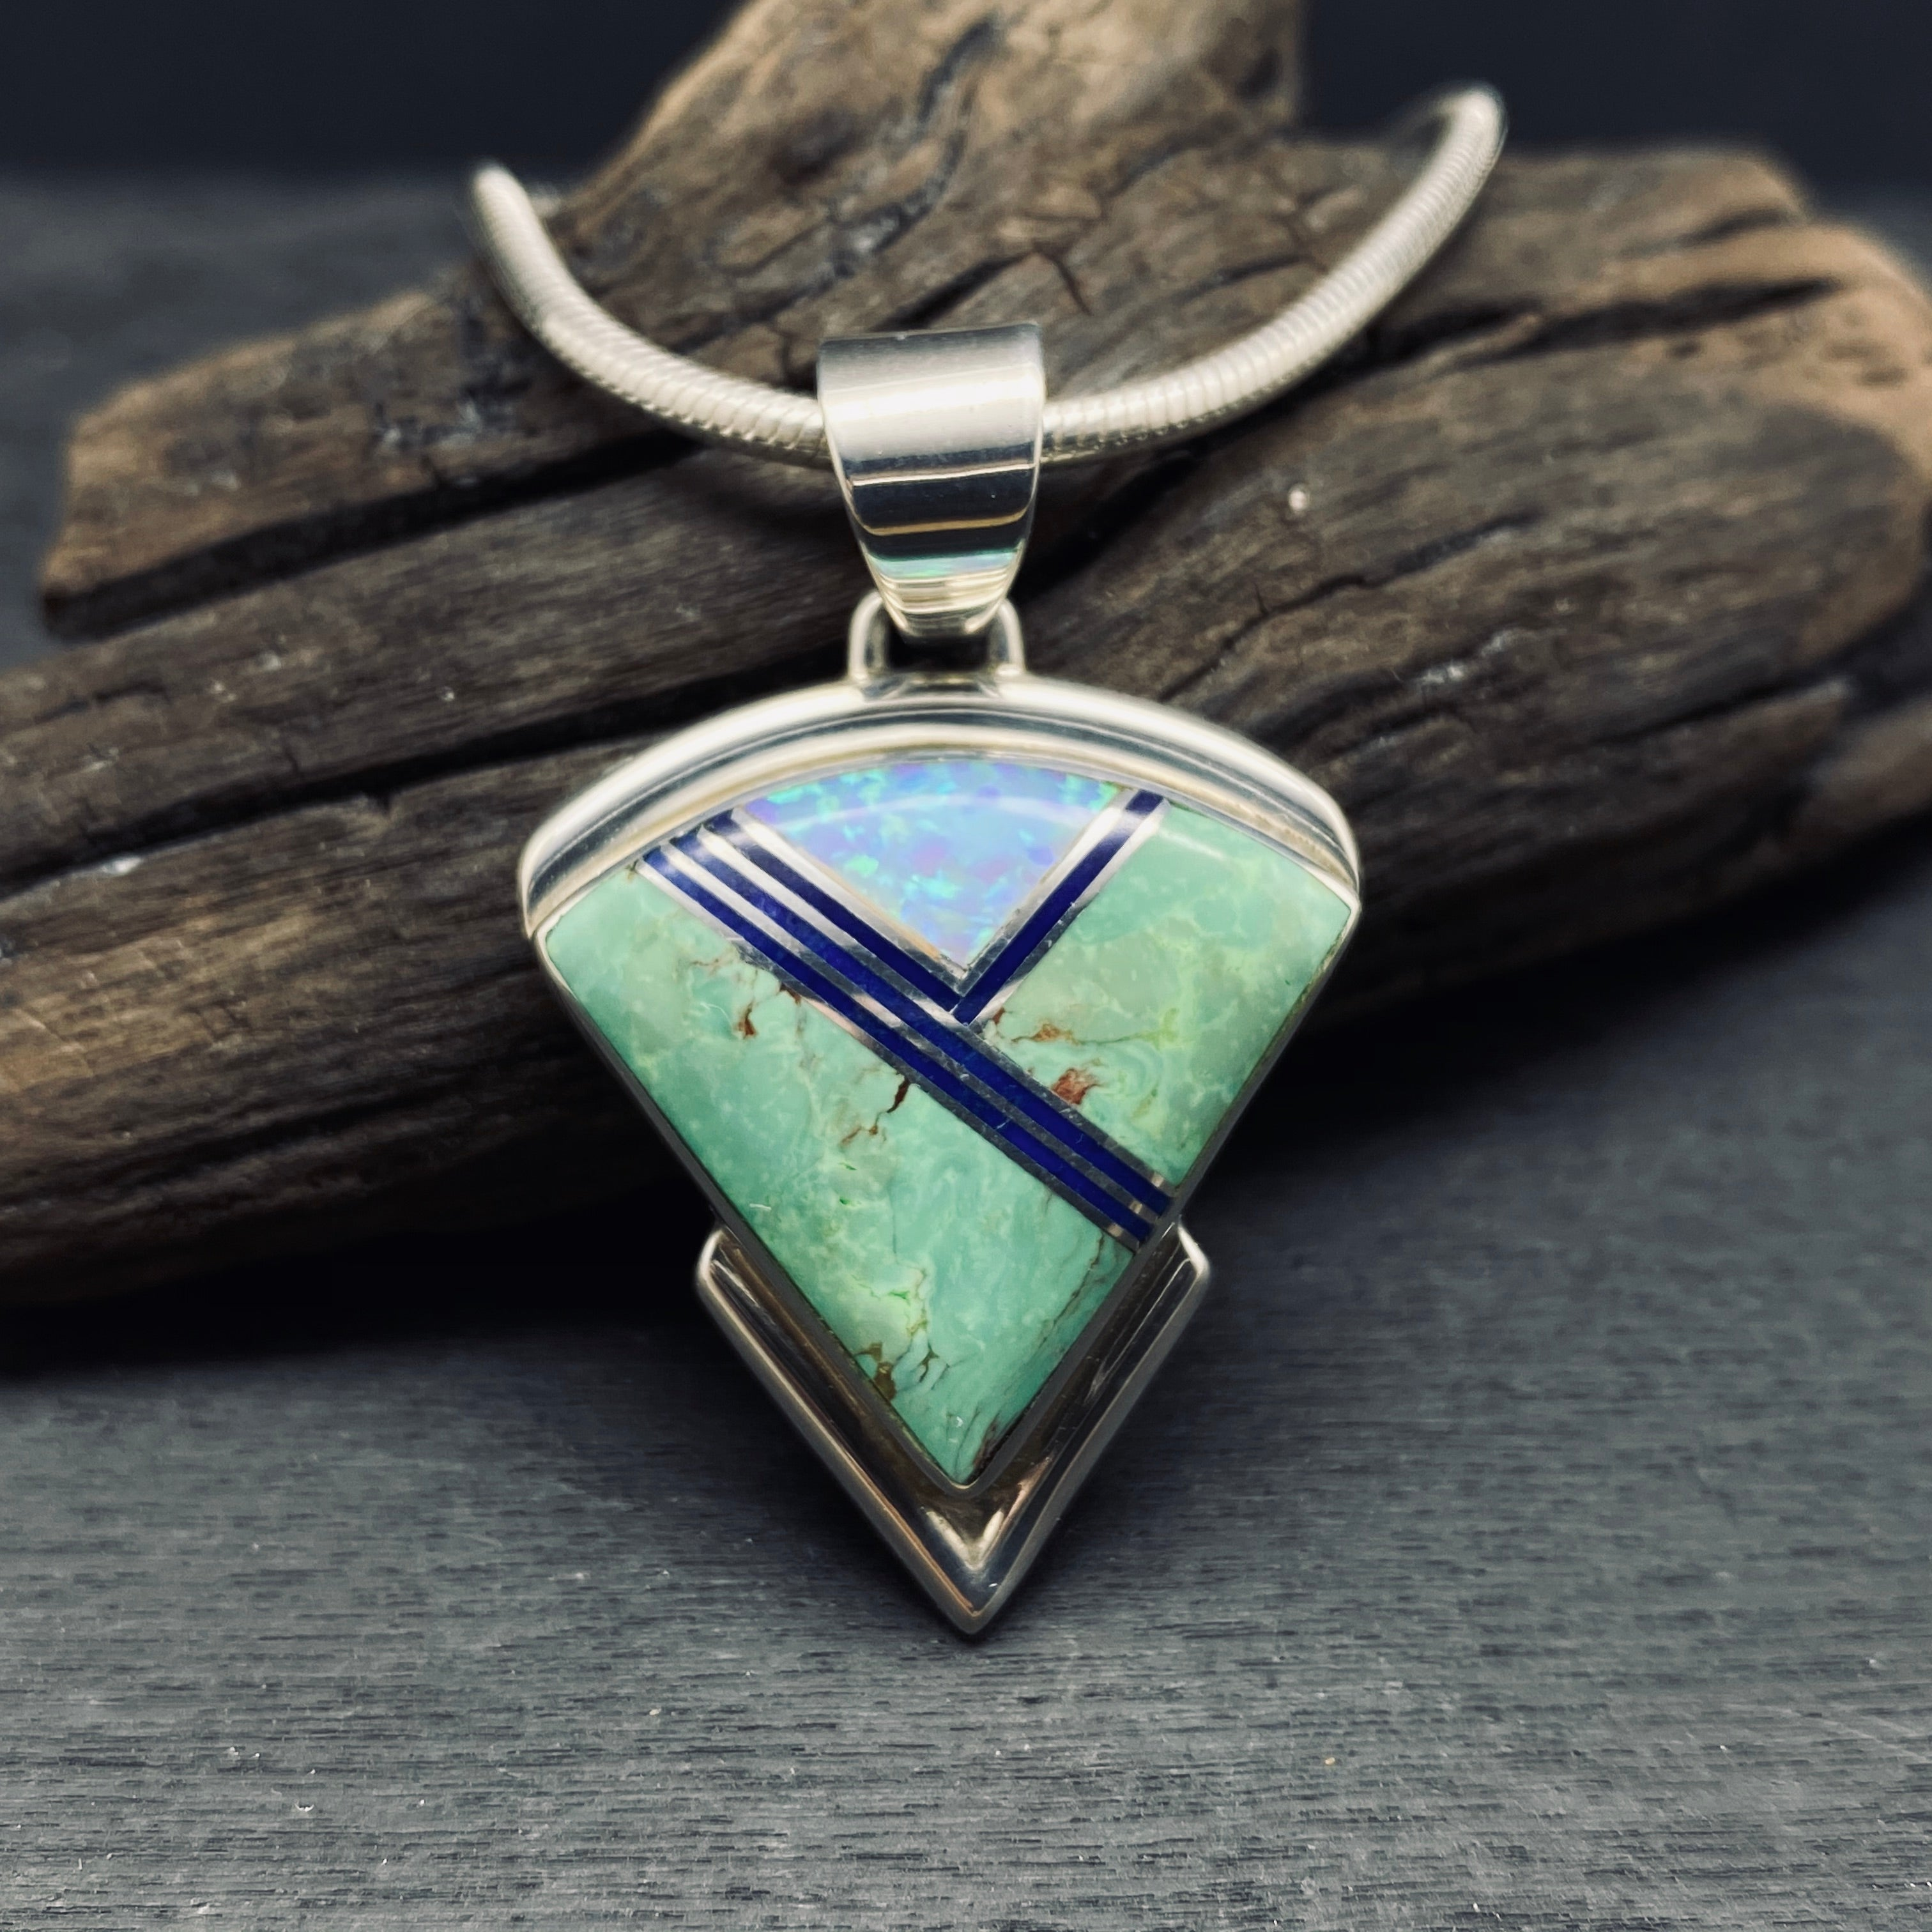 sterling silver Navajo inlaid pendant